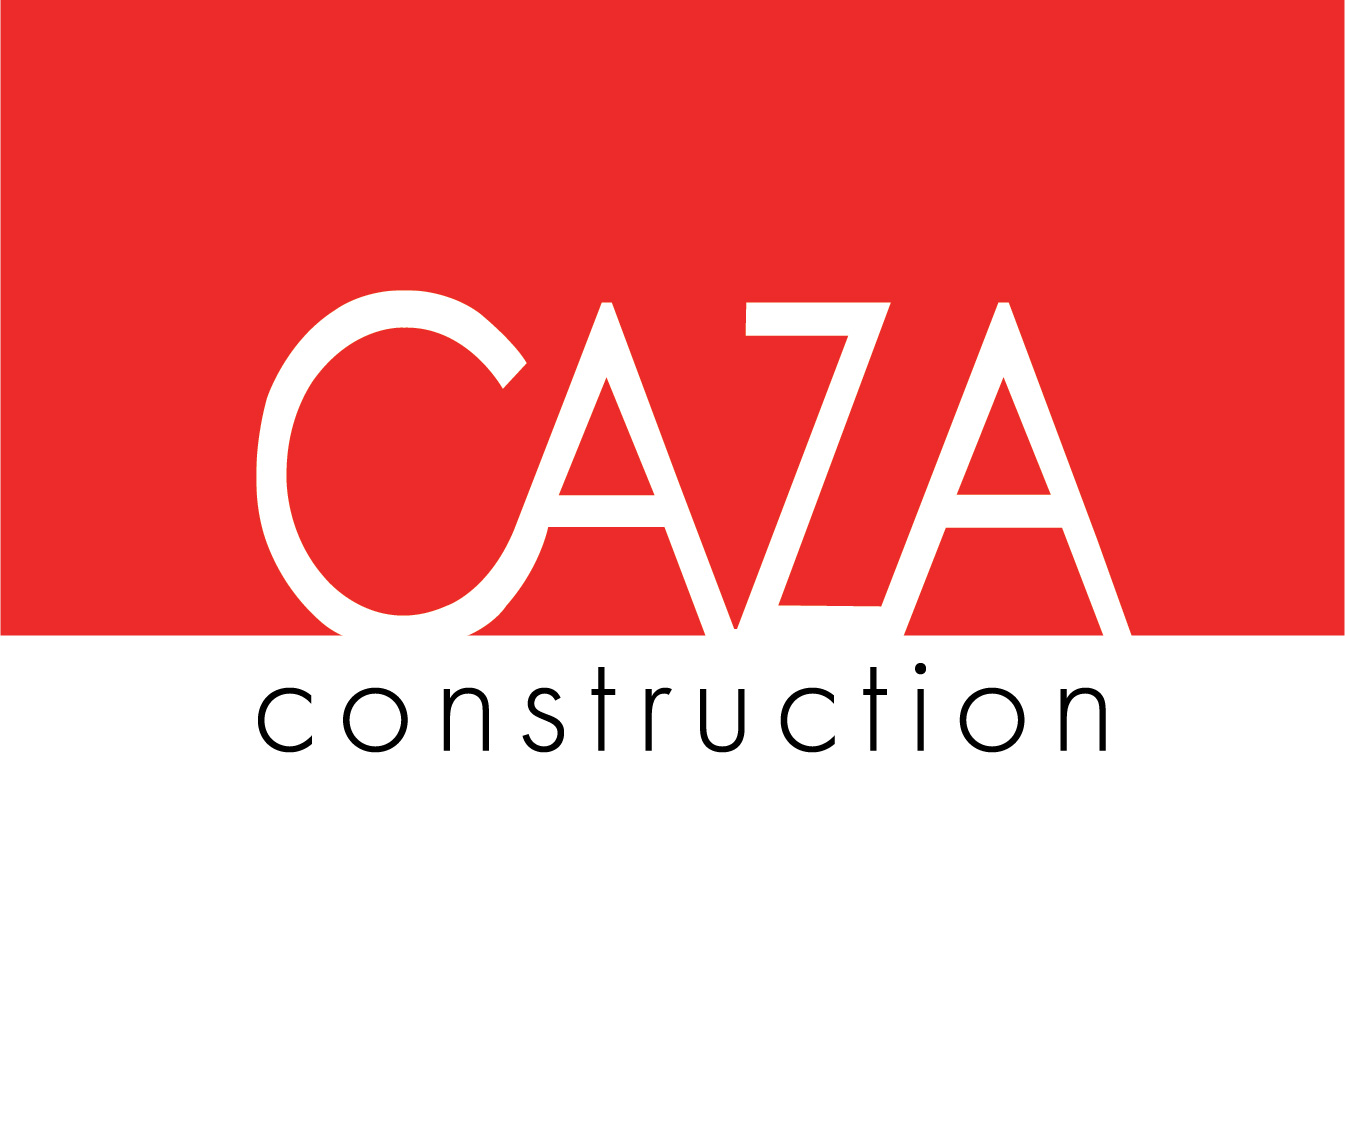 CAZA Construction Logo Square 2-01.jpg